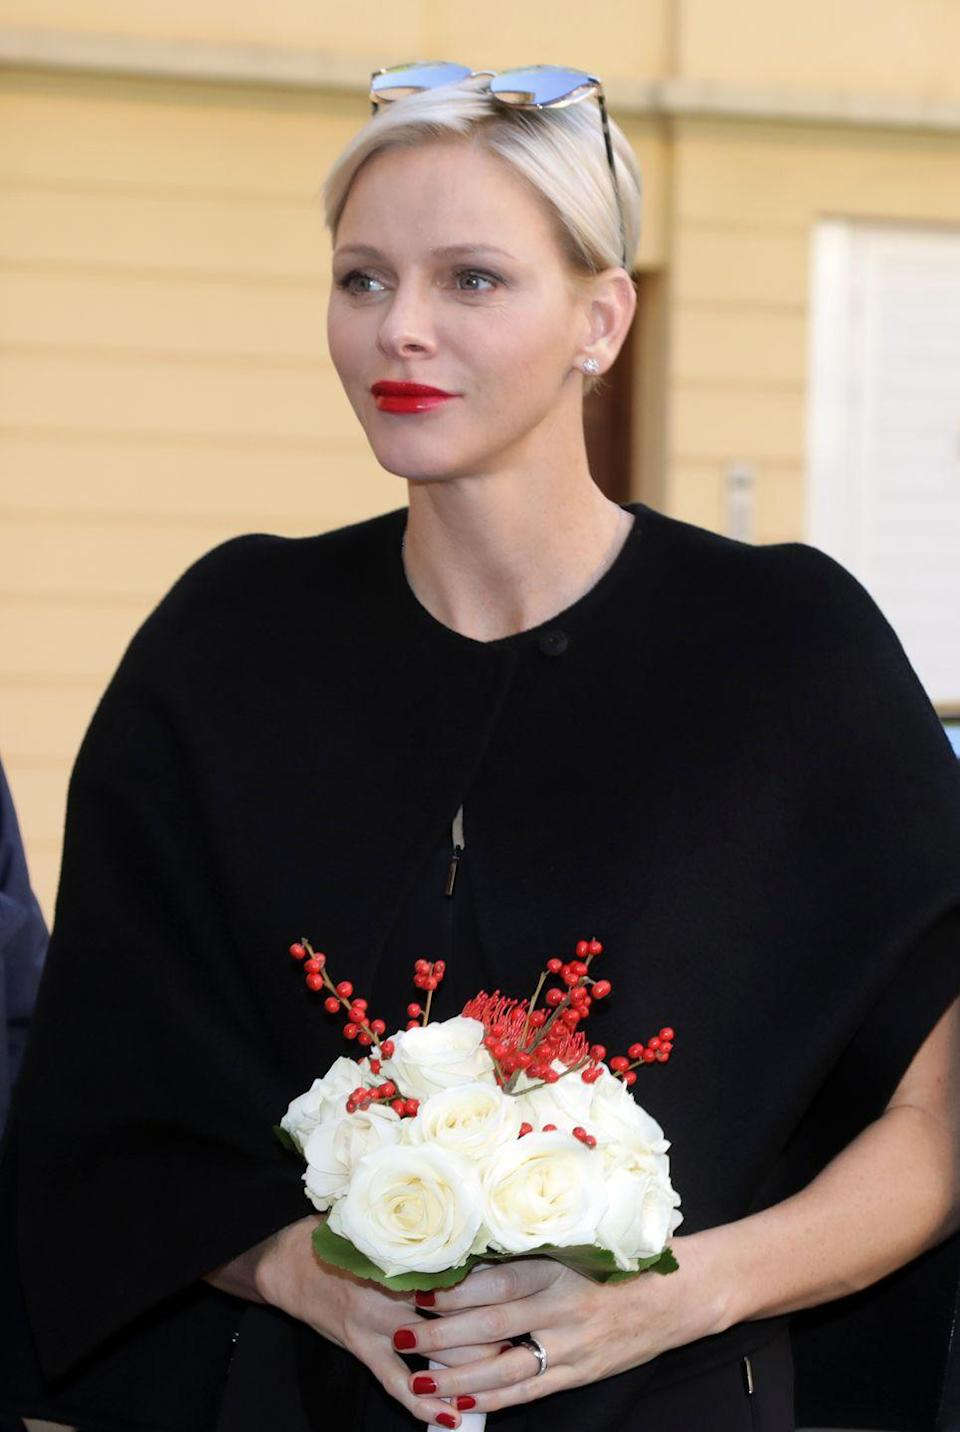 "<p>Before marrying Prince Albert of Monaco in 2010, Charlene was a competitive swimmer, even going as far as representing South Africa at the 2000 Sydney Olympics. In 2014, Charlene gave birth to twins Princess Gabriella and Prince Jacques, the latter of whom is the first in line to take over the Monegasque throne after Albert. The adorable twins are regularly featured on Princess Charlene's official Instagram account. In fact, Charlene marked the siblings' <a href=""https://www.instagram.com/p/Bbcna8MBTvW/"" rel=""nofollow noopener"" target=""_blank"" data-ylk=""slk:first-ever haircut"" class=""link rapid-noclick-resp"">first-ever haircut</a> with a gram on Nov. 13, 2017. </p>"